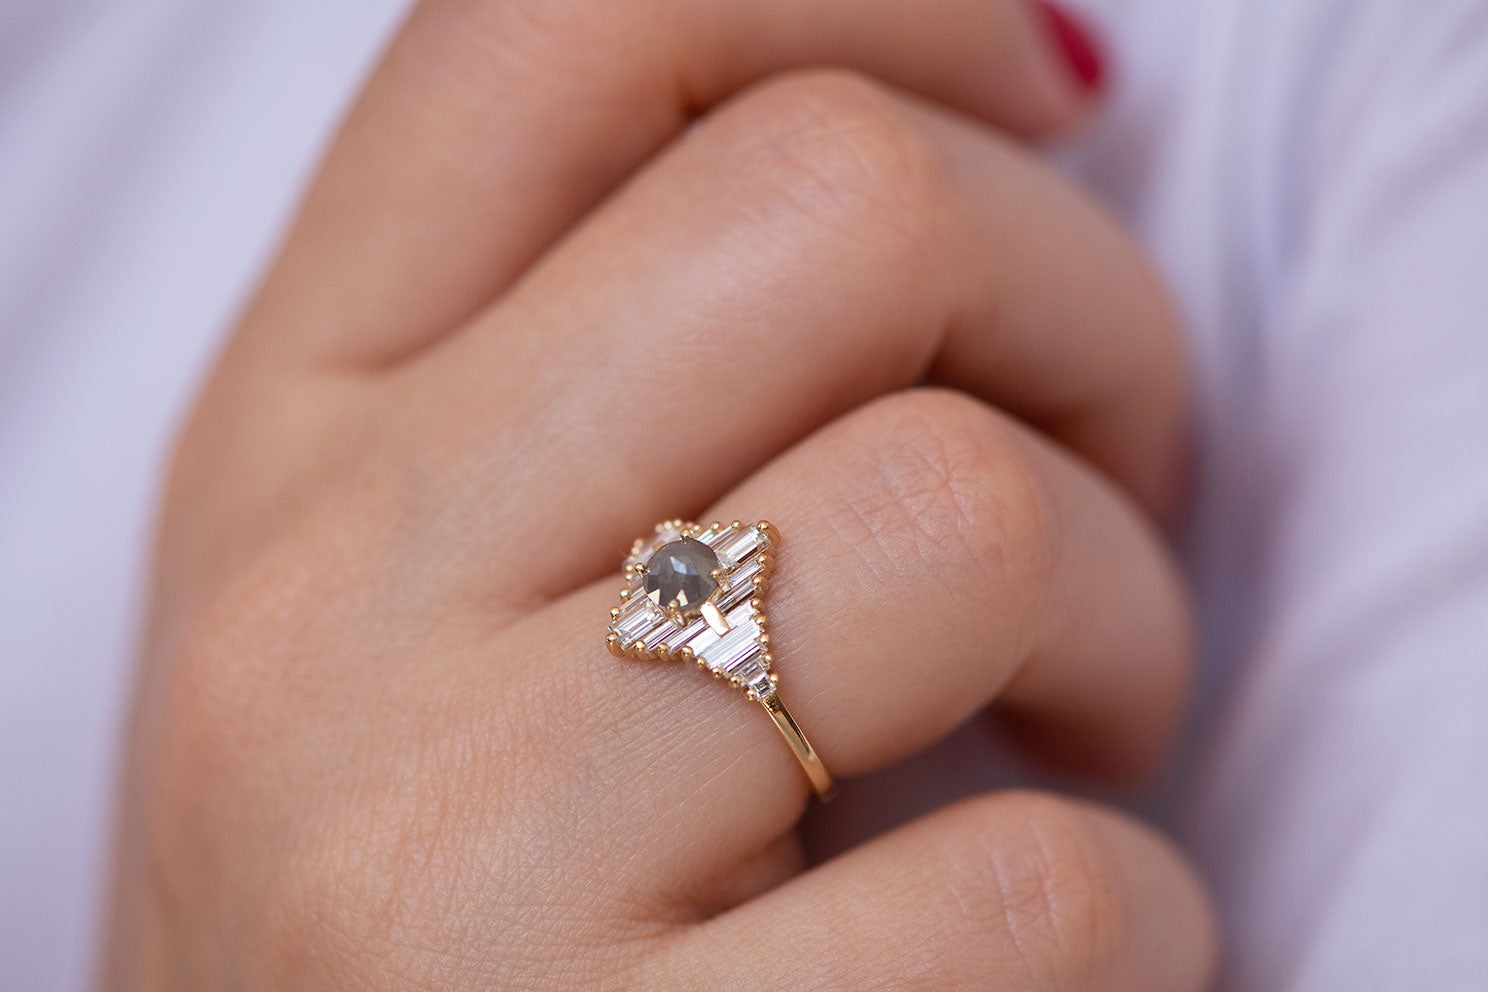 Star Engagement Ring with Baguette and Rose Cut Diamonds on Hand side view up close